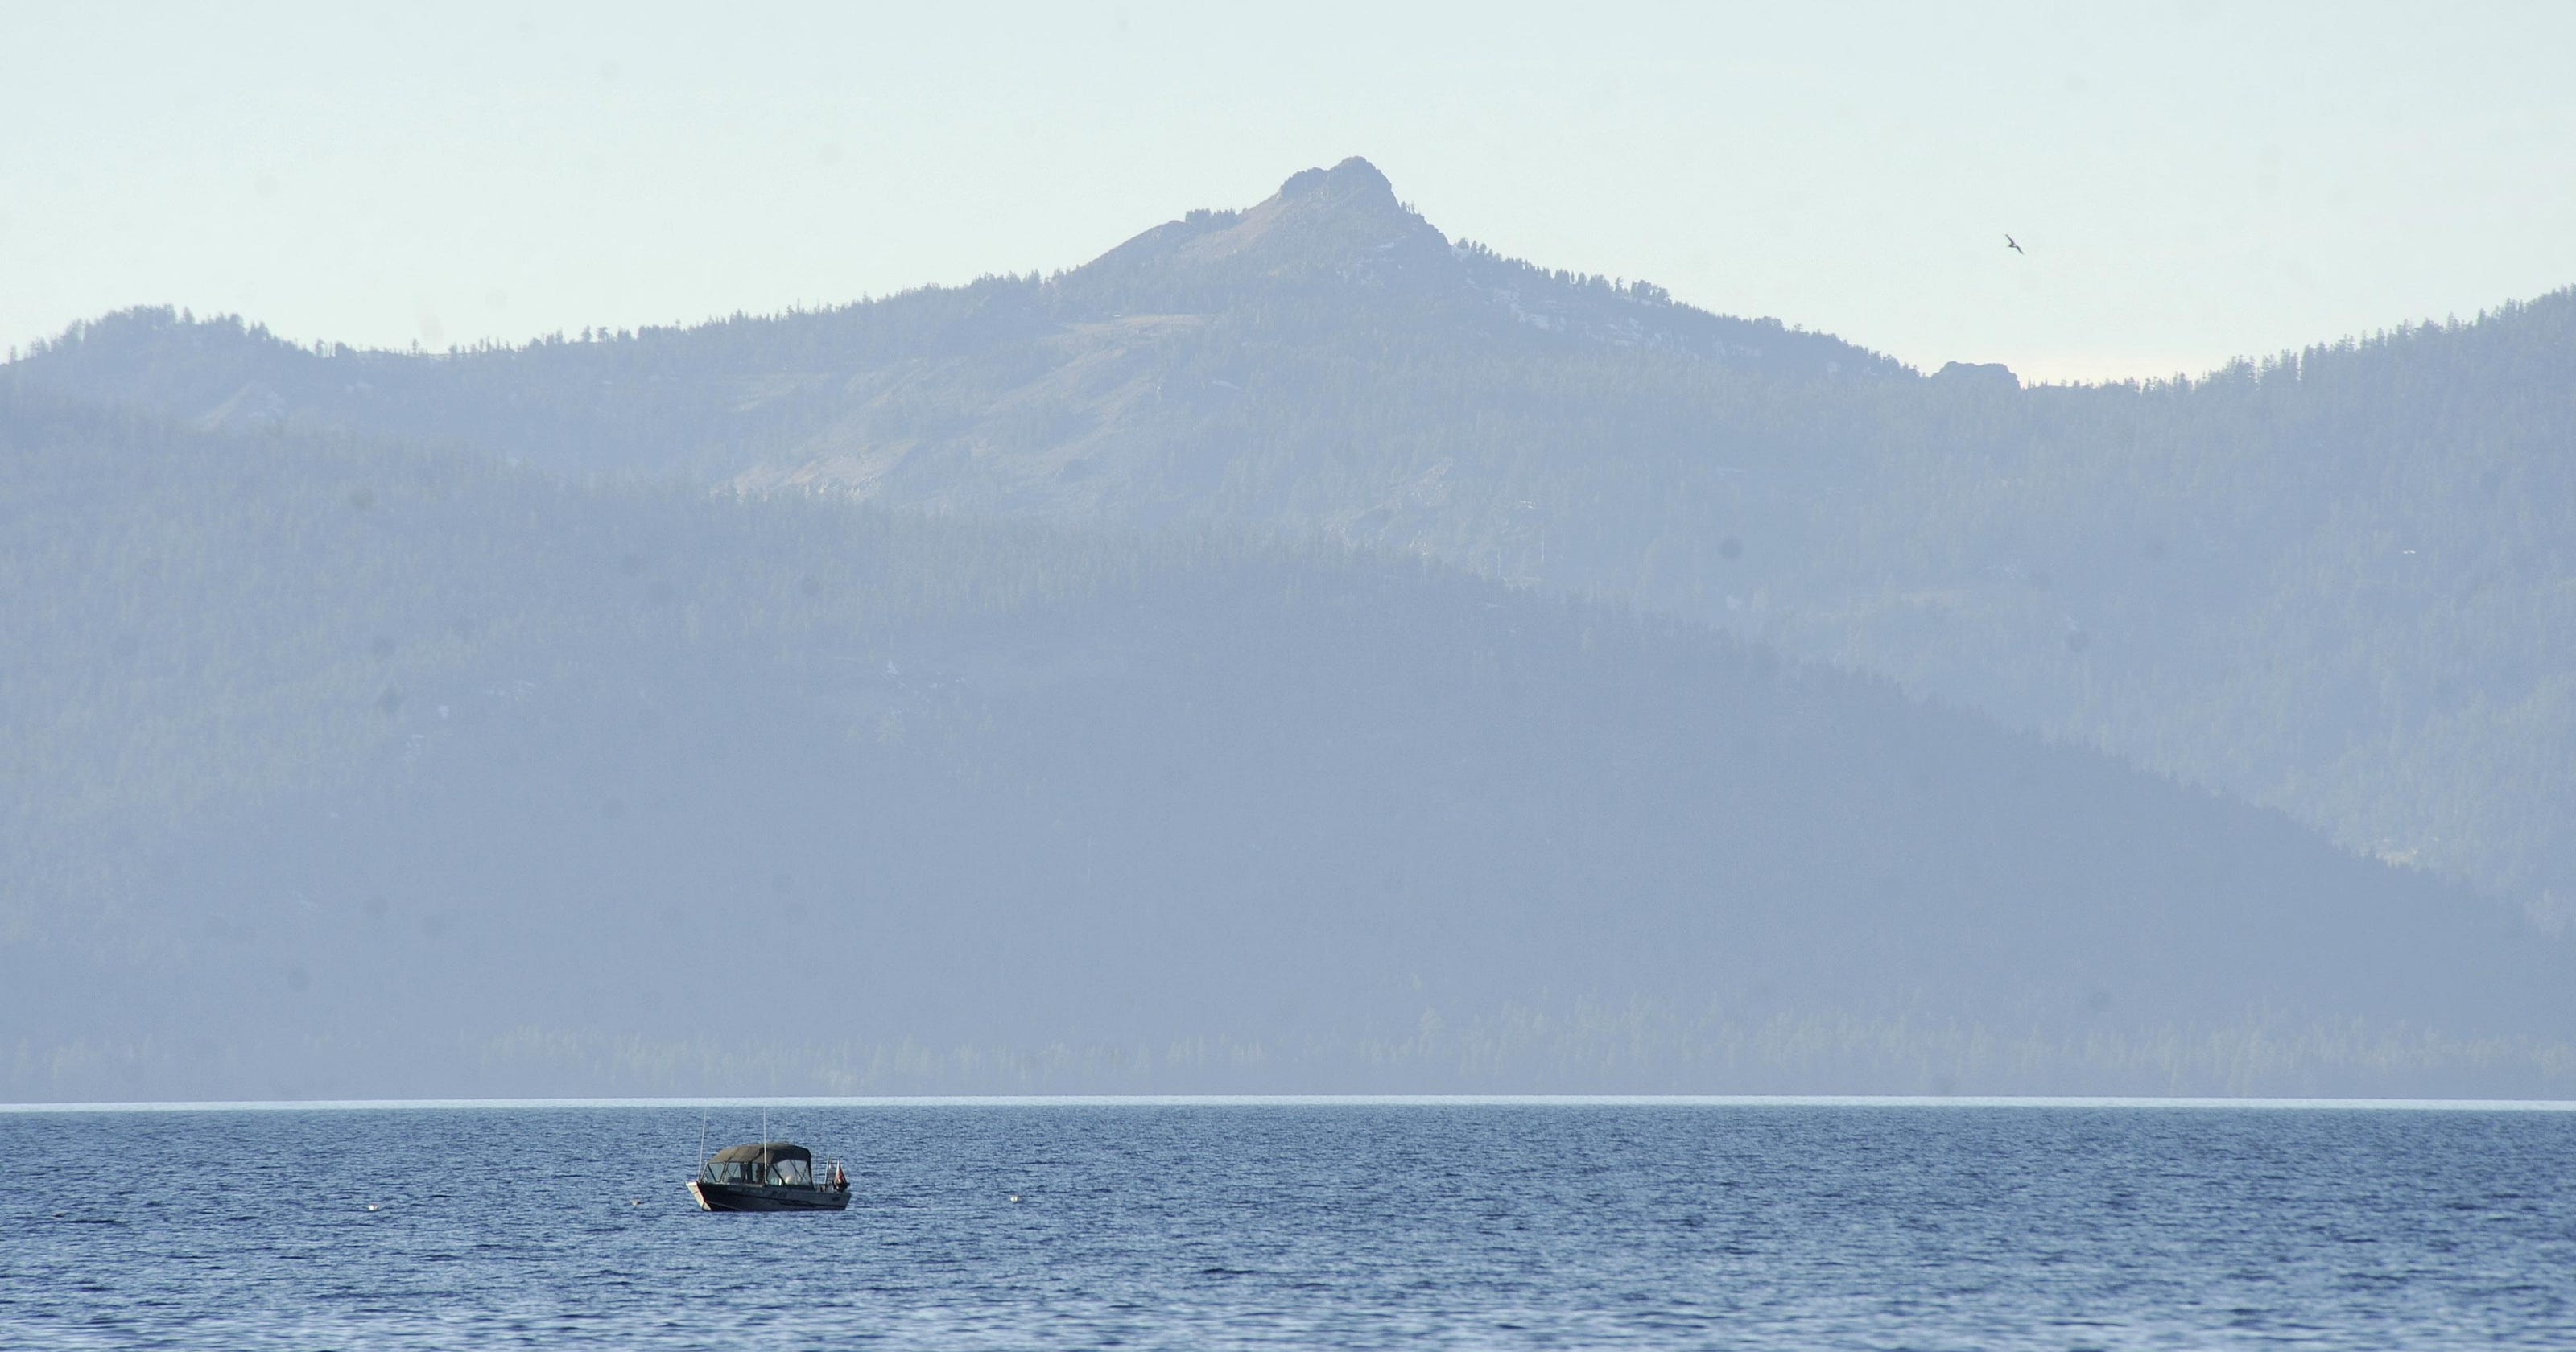 Body of drowned man found at 1,565 feet in Lake Tahoe, the deepest recovery in US history